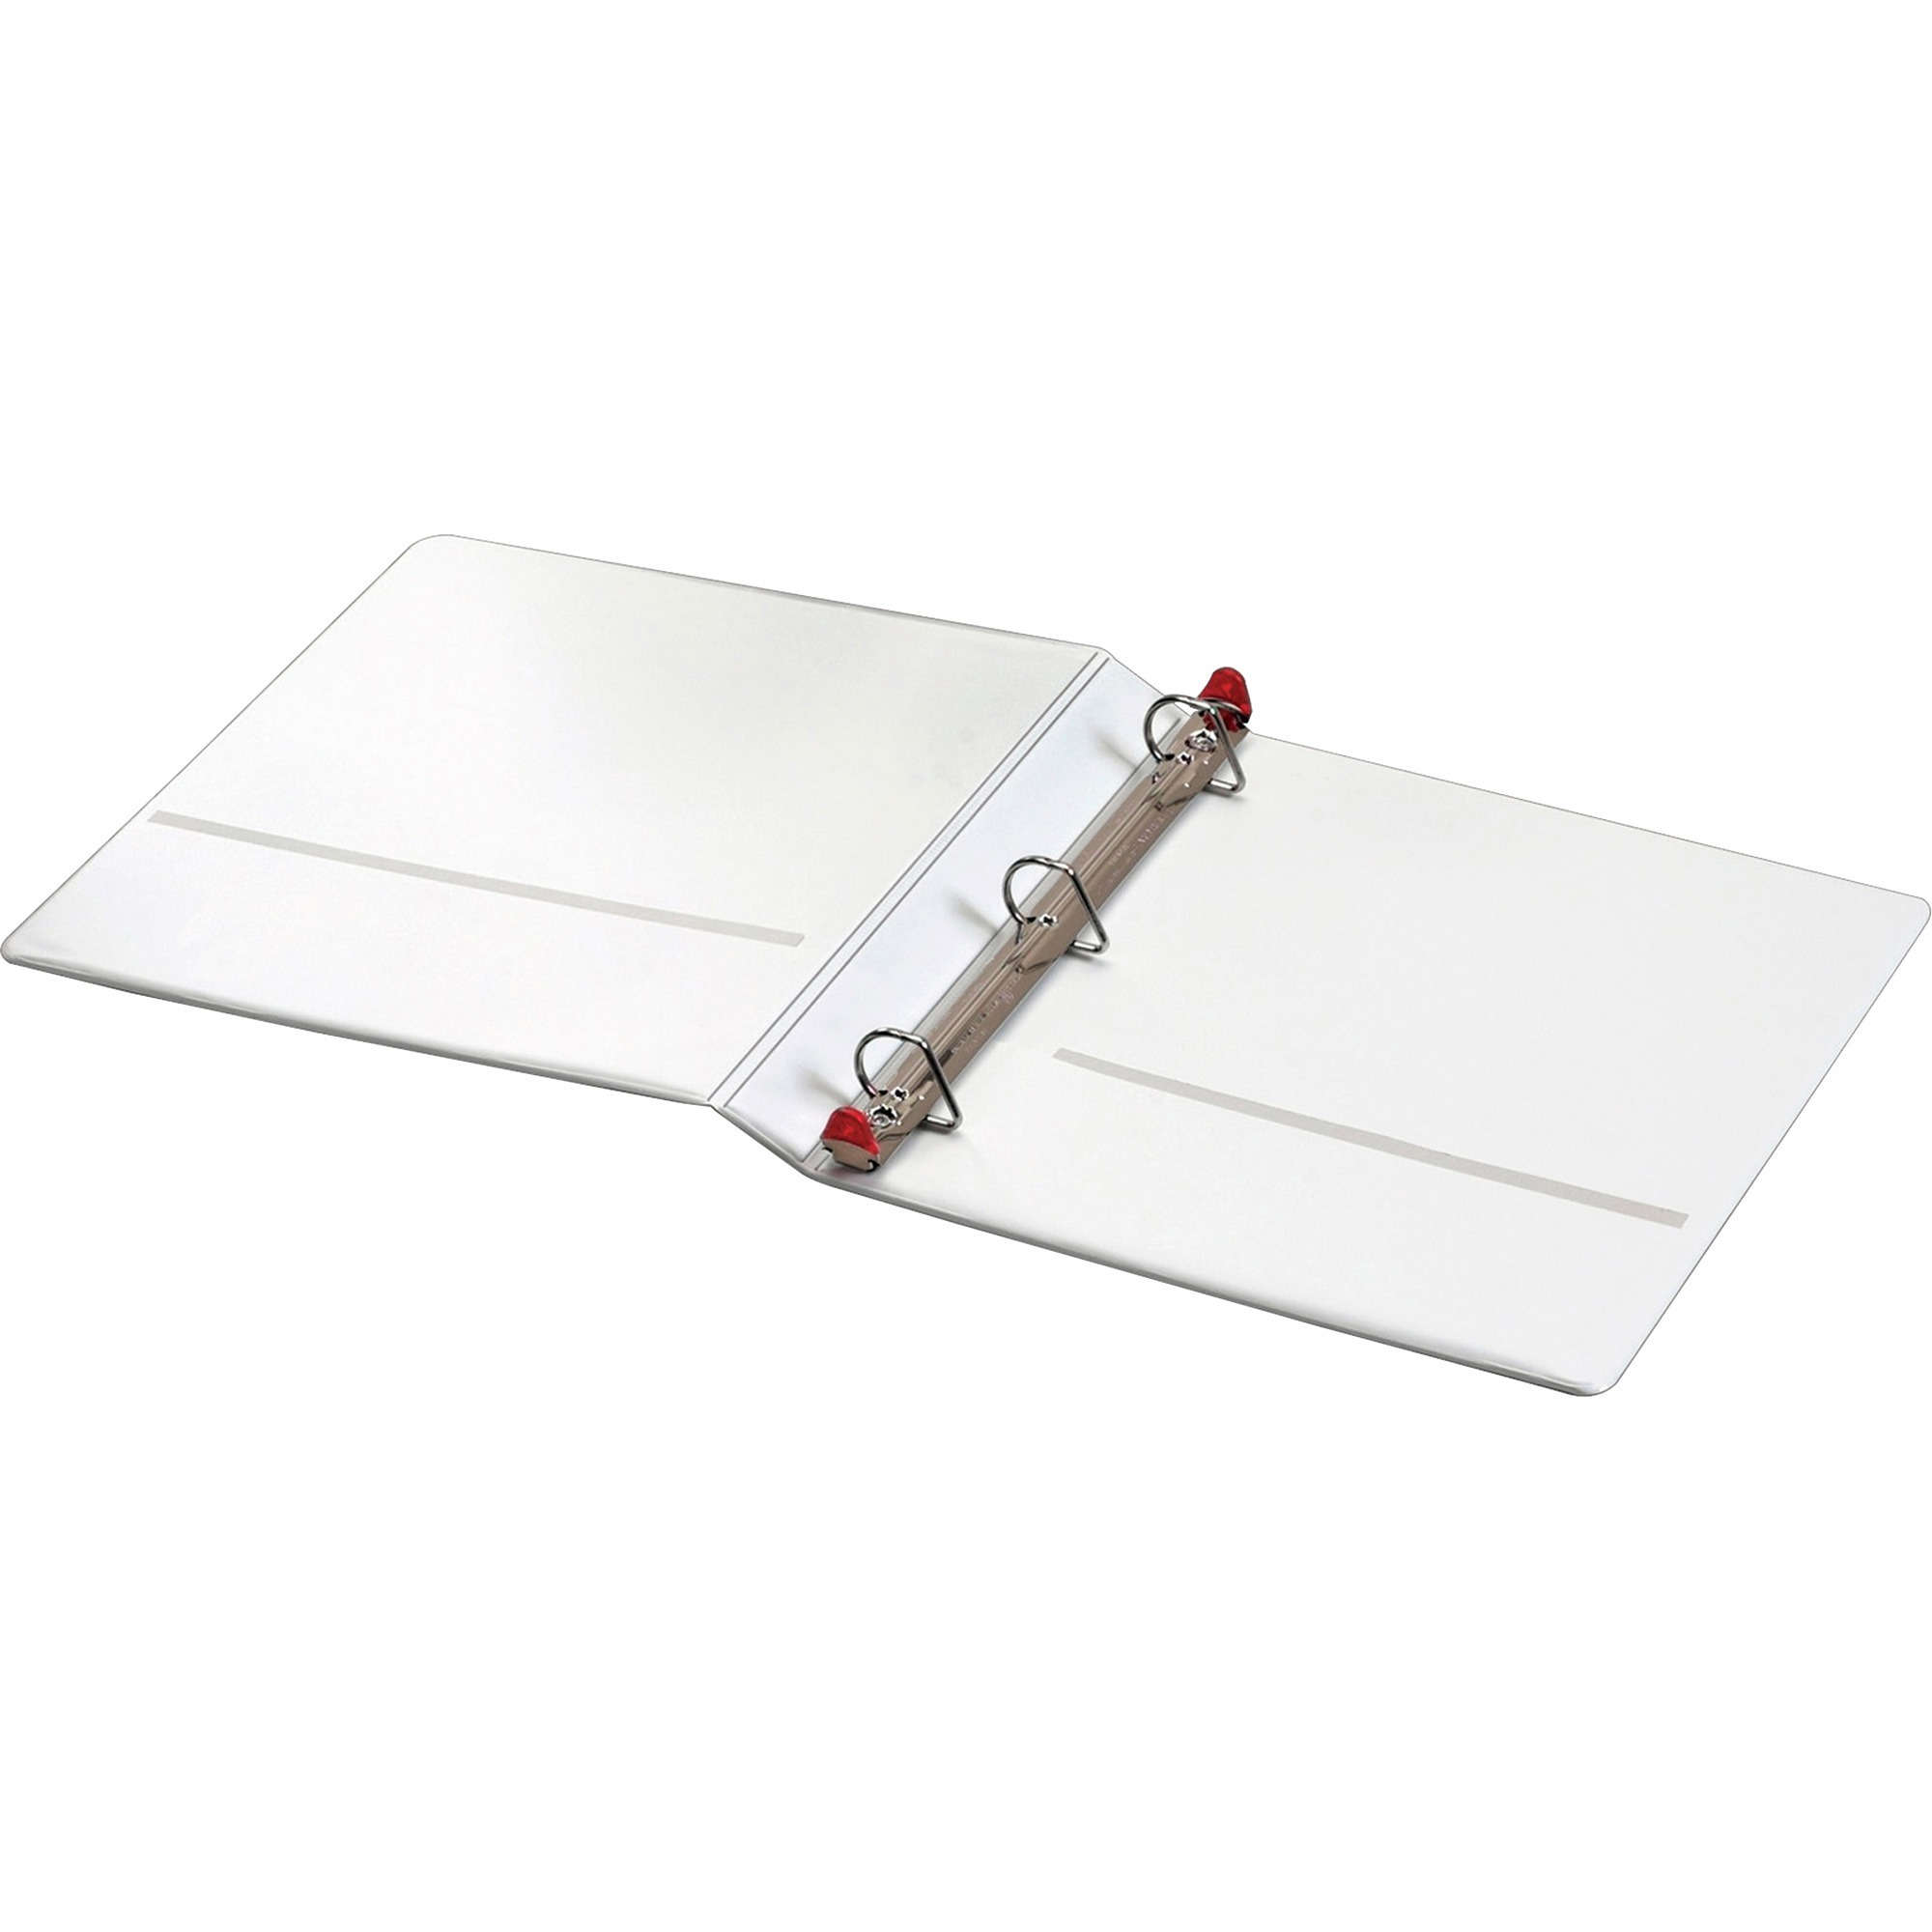 """Cardinal Treated Binder ClearVue Locking Slant-D Ring Binder, 1"""" Cap, 11 x 8 1 2, White by TOPS Products"""